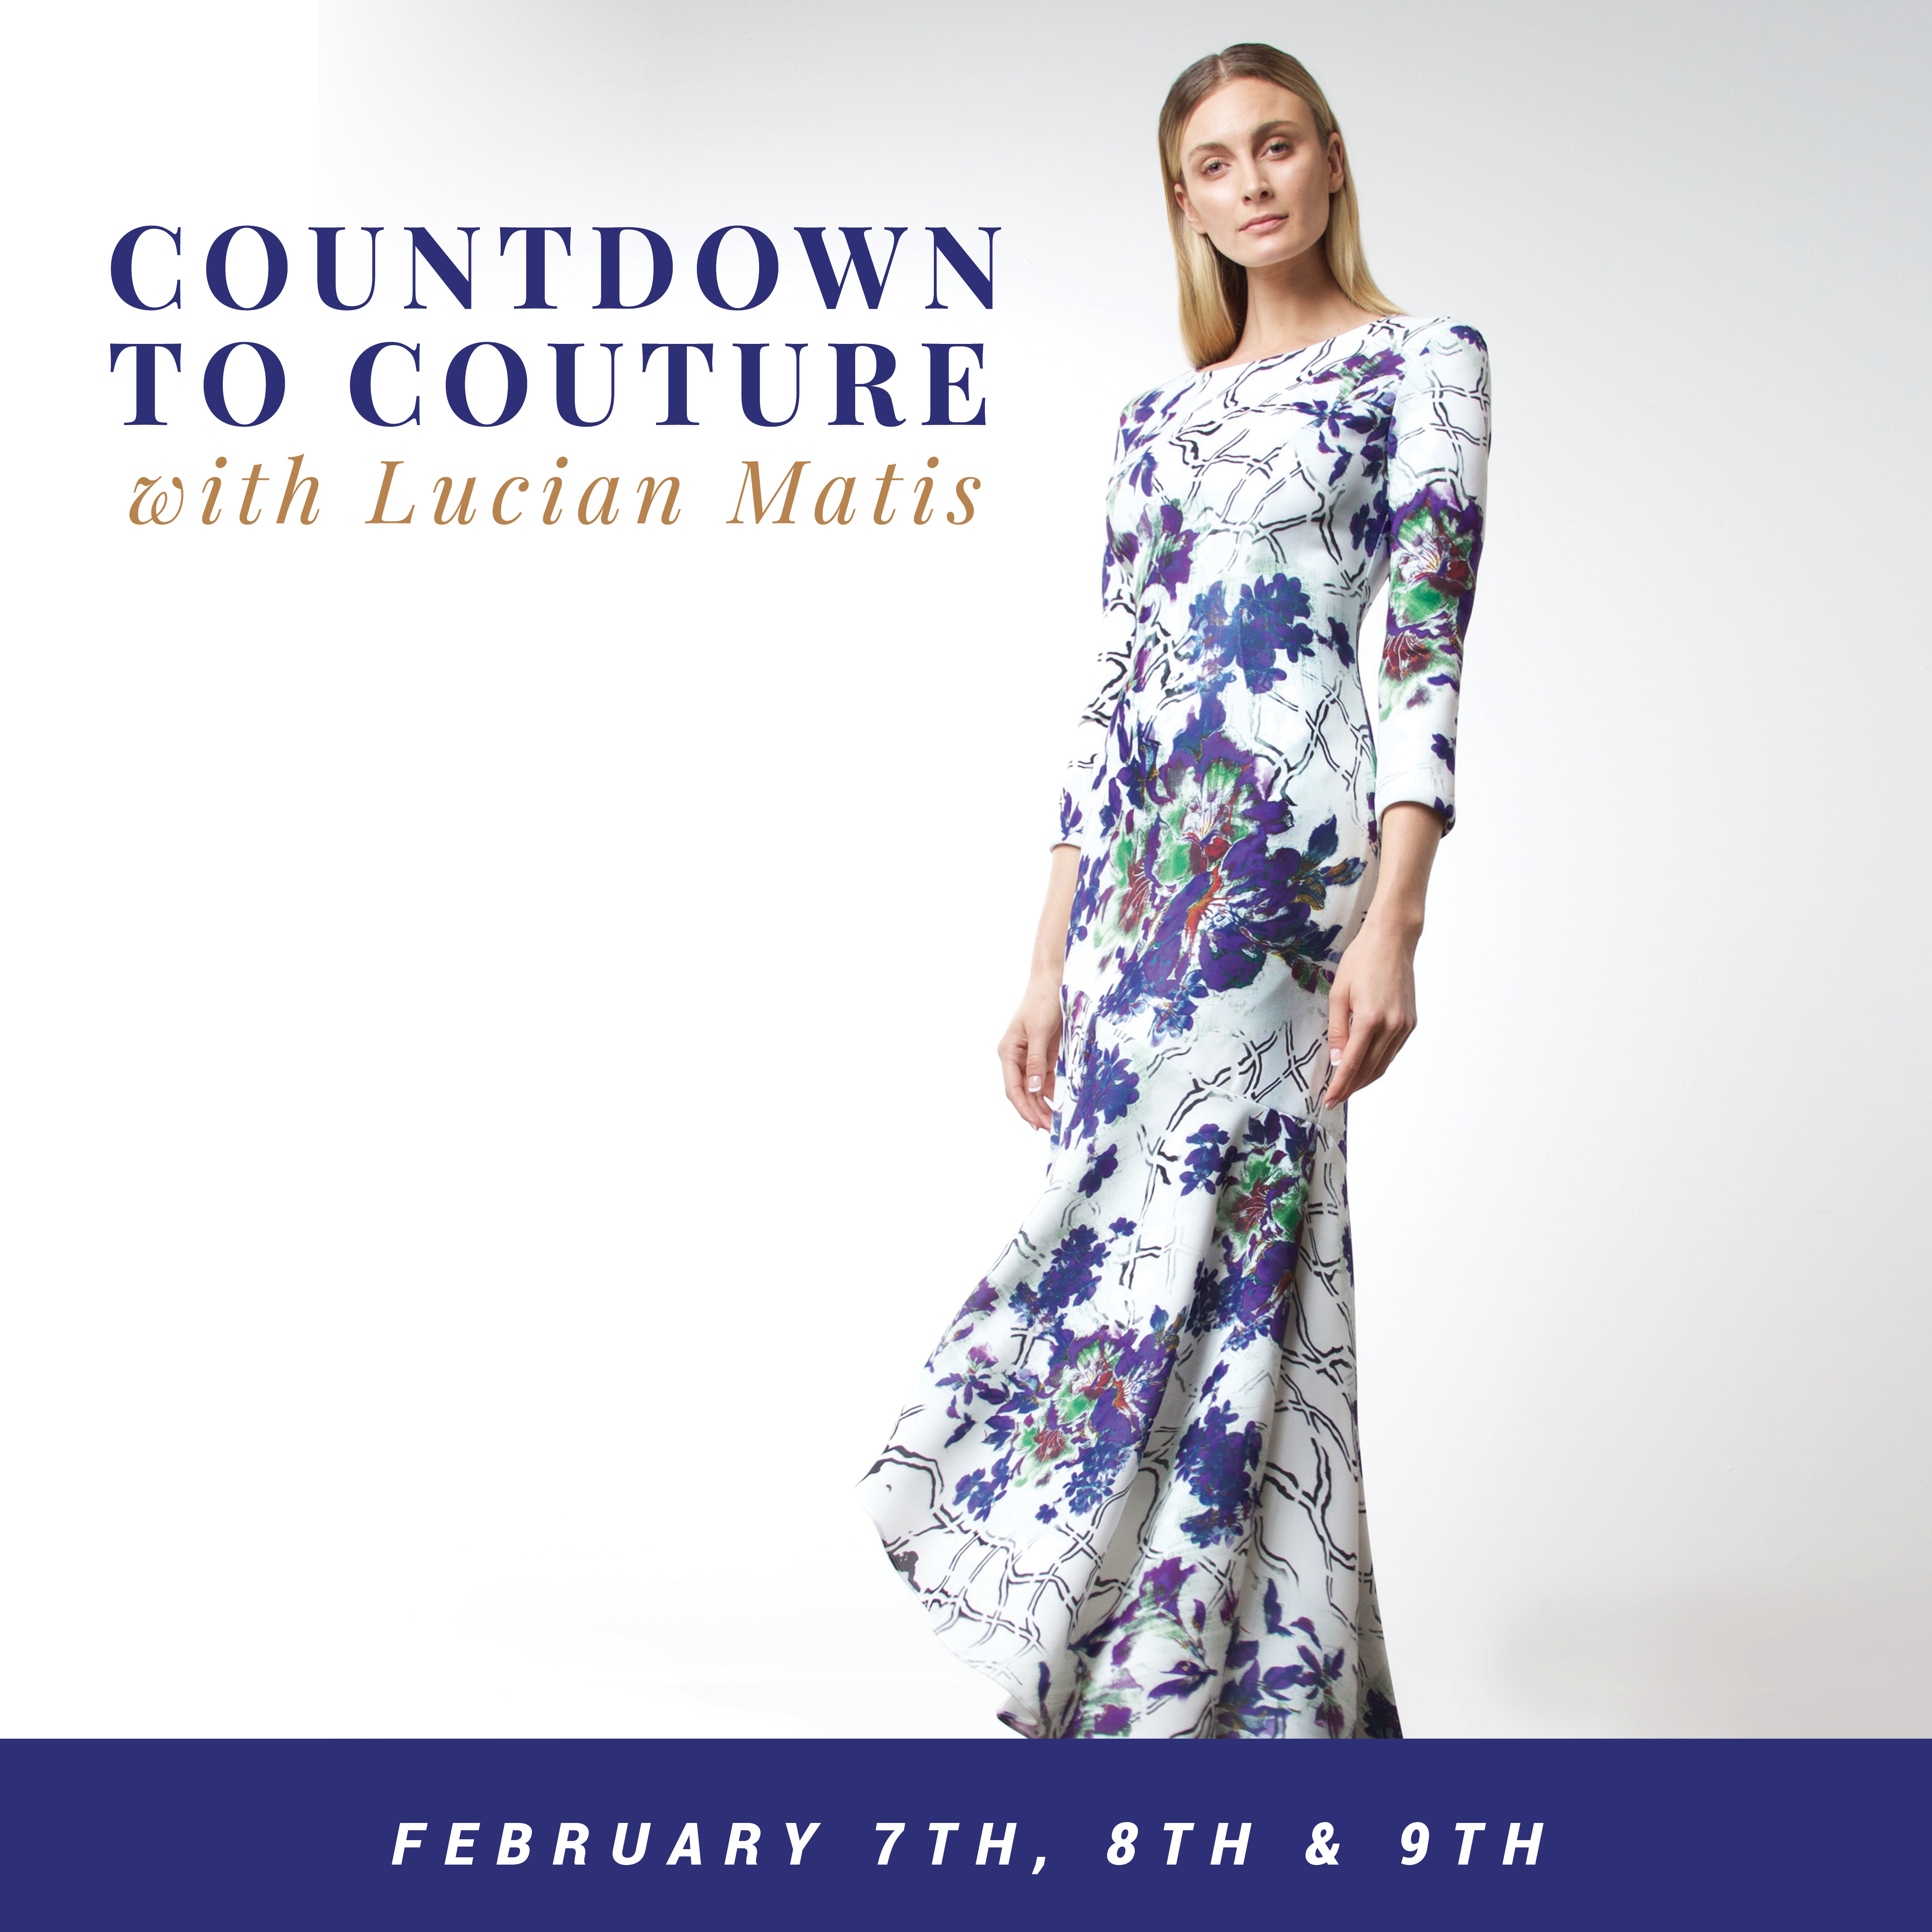 Countdown to Couture Event